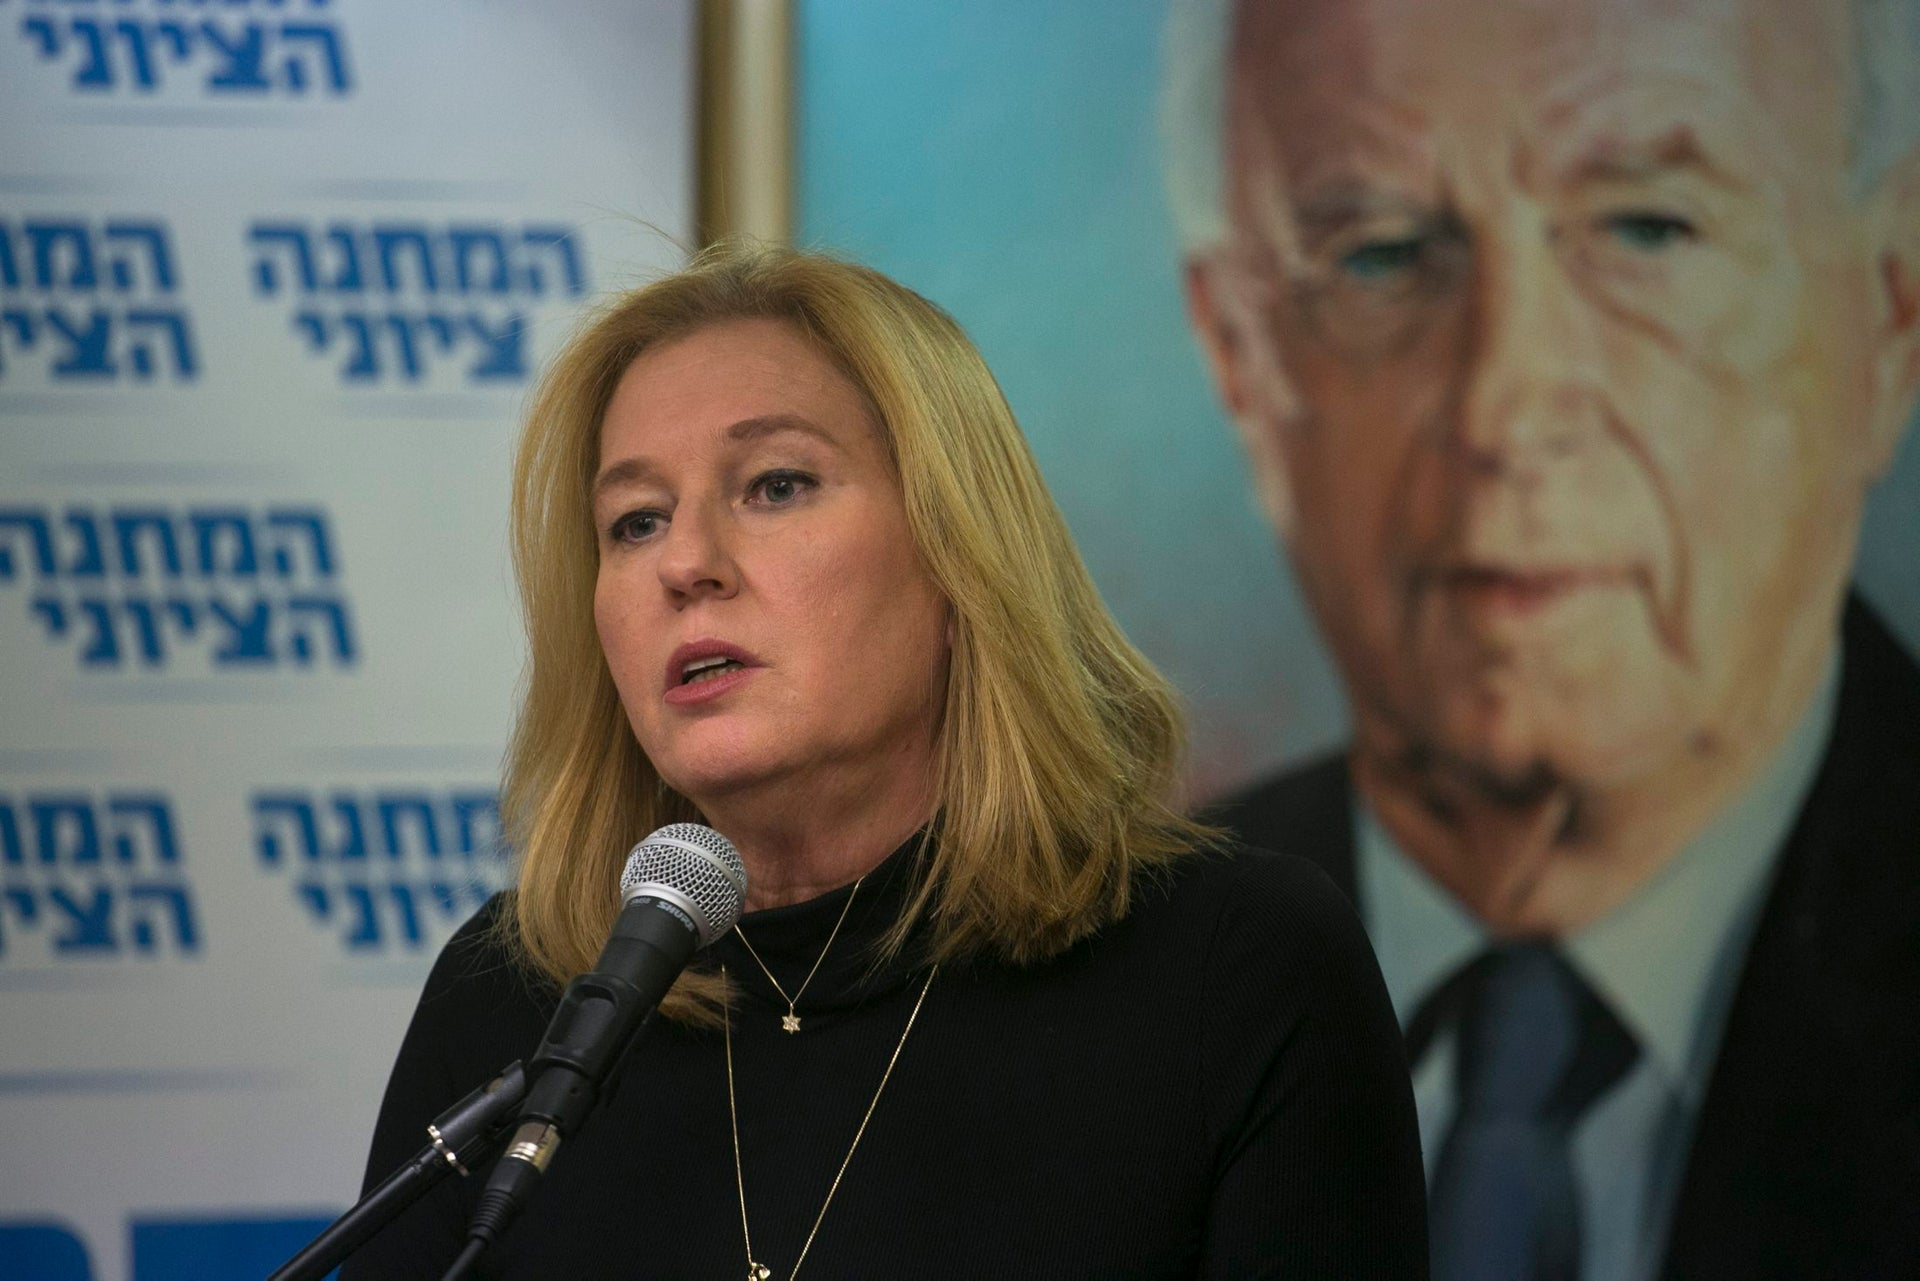 Hatnuah Chairwoman Tzipi Livni. Held eight cabinet positions over the years, including foreign and justice minister.